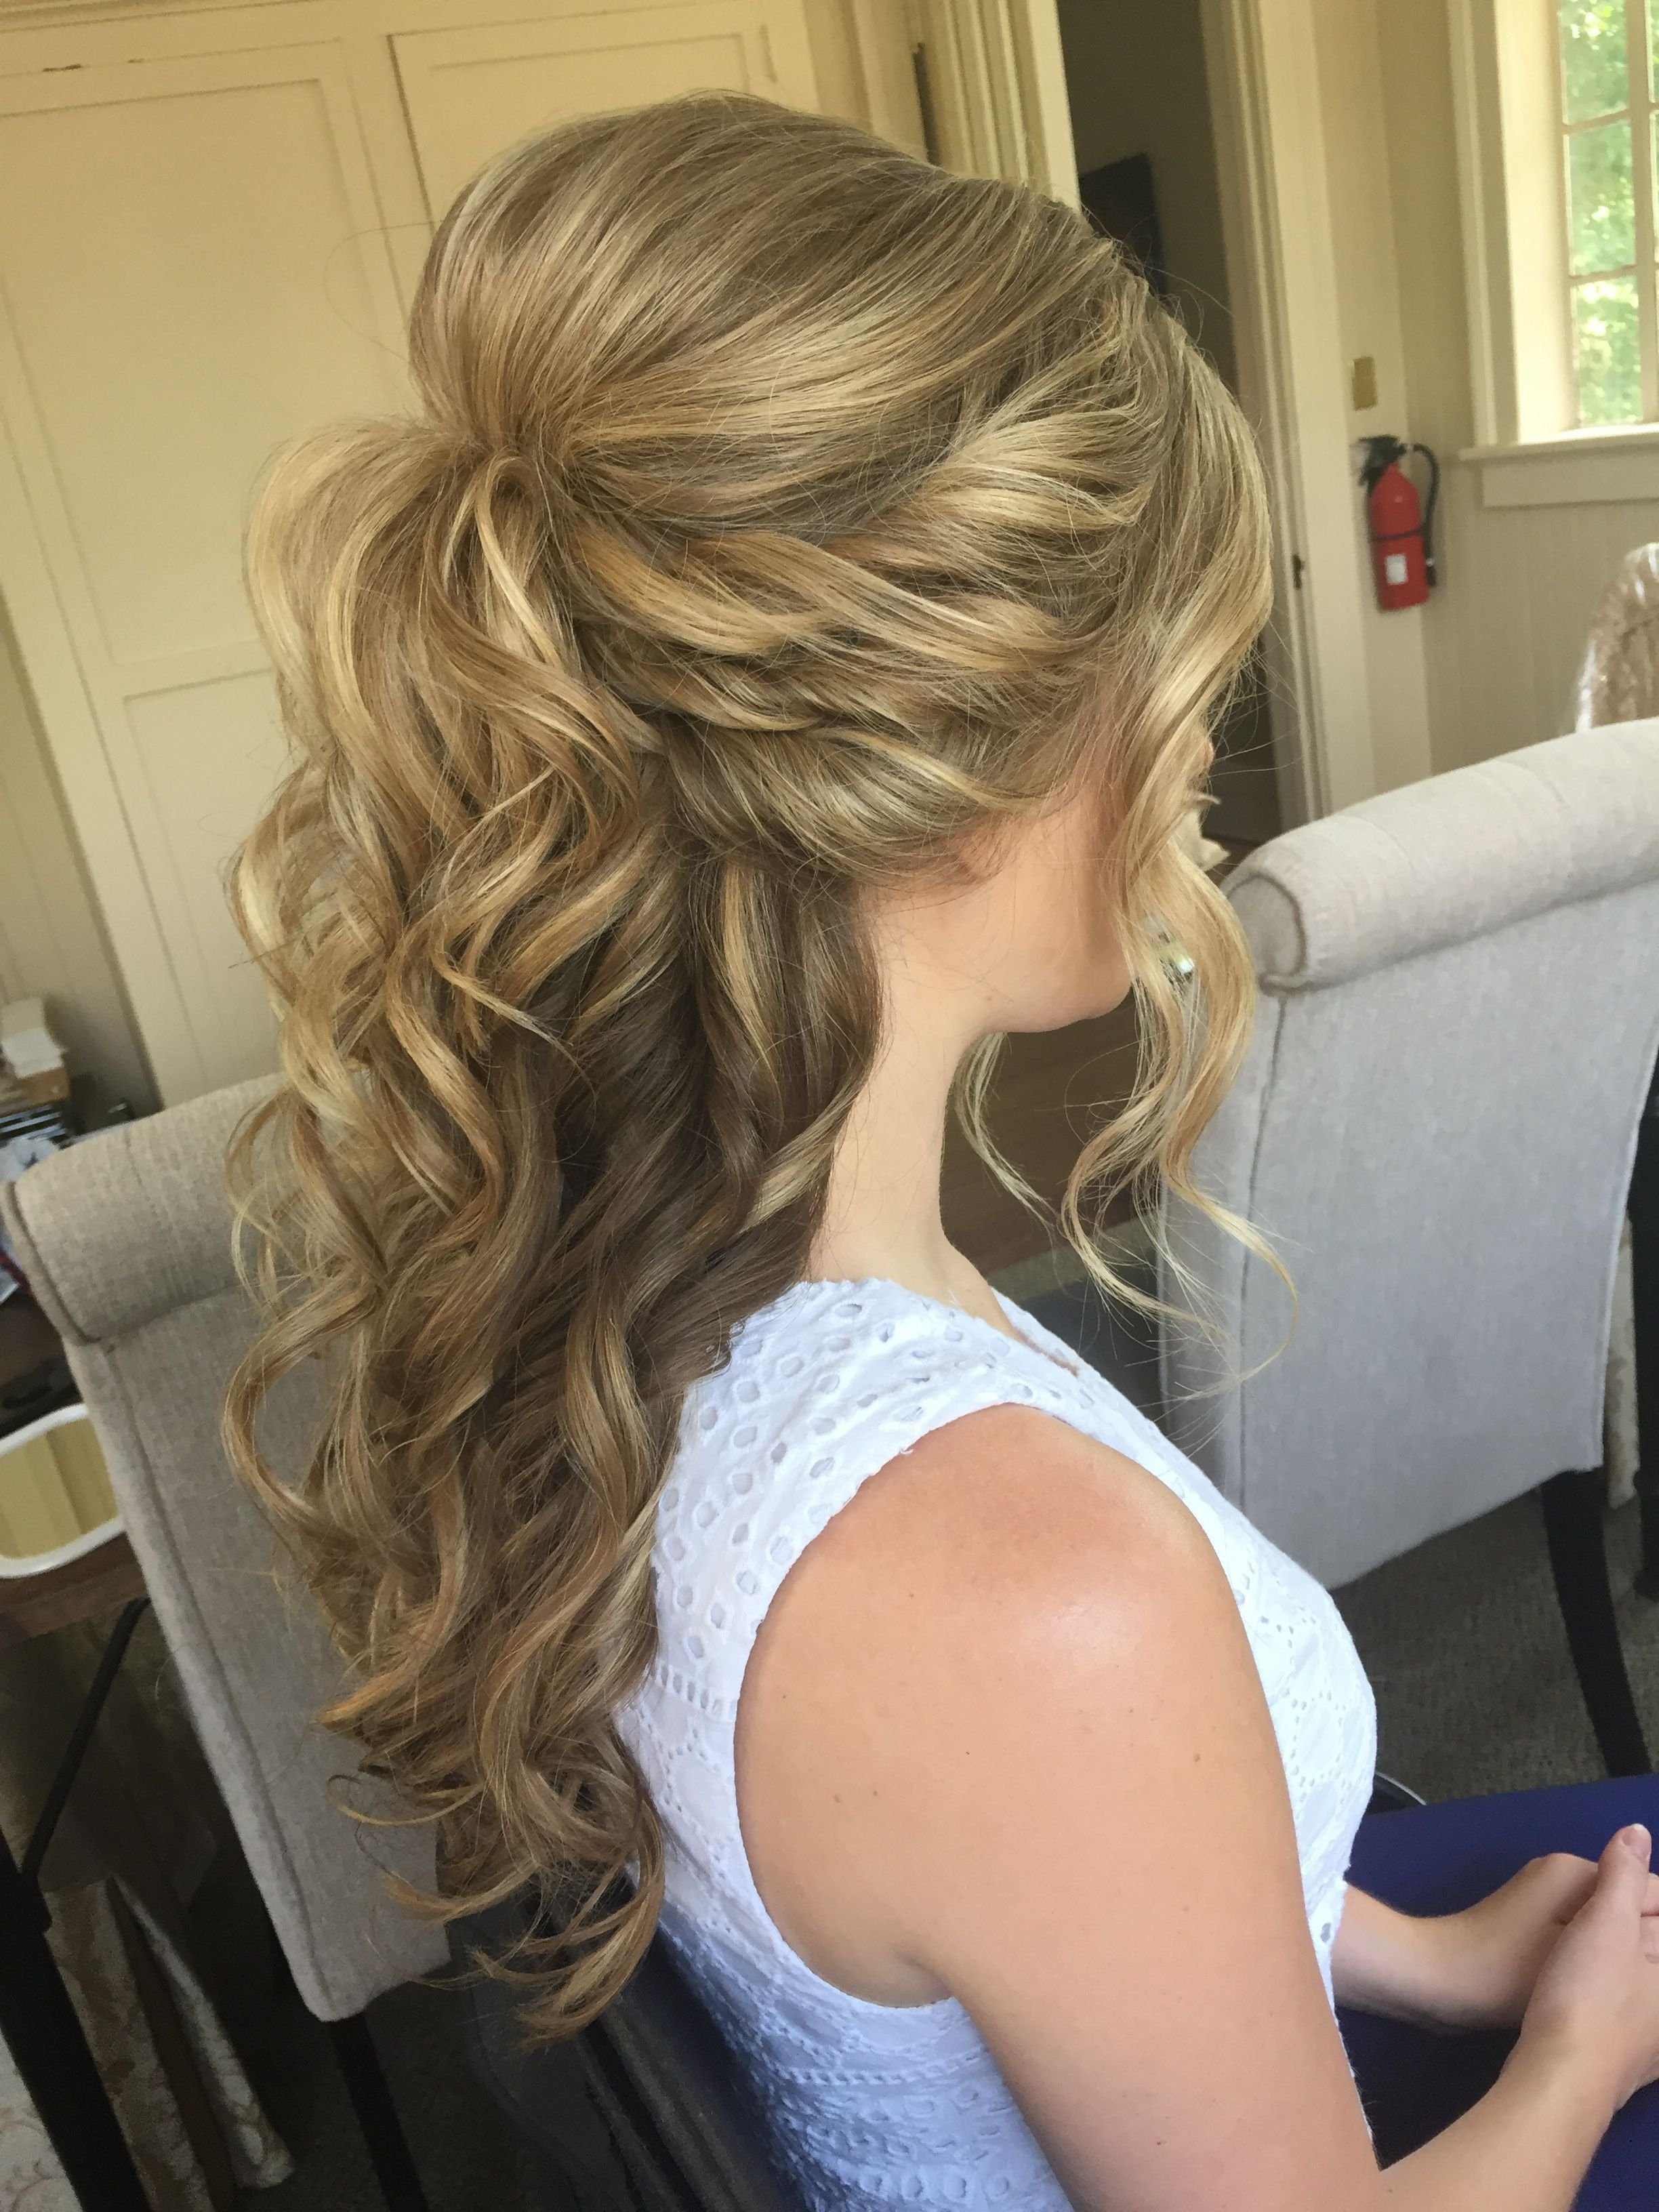 Prom Hairstyles Curly Down African 86 Prom Hairstyles For Medium Hair With Curls And Braids Half Updo Hairstyles Hair Styles Wedding Hairstyles For Long Hair